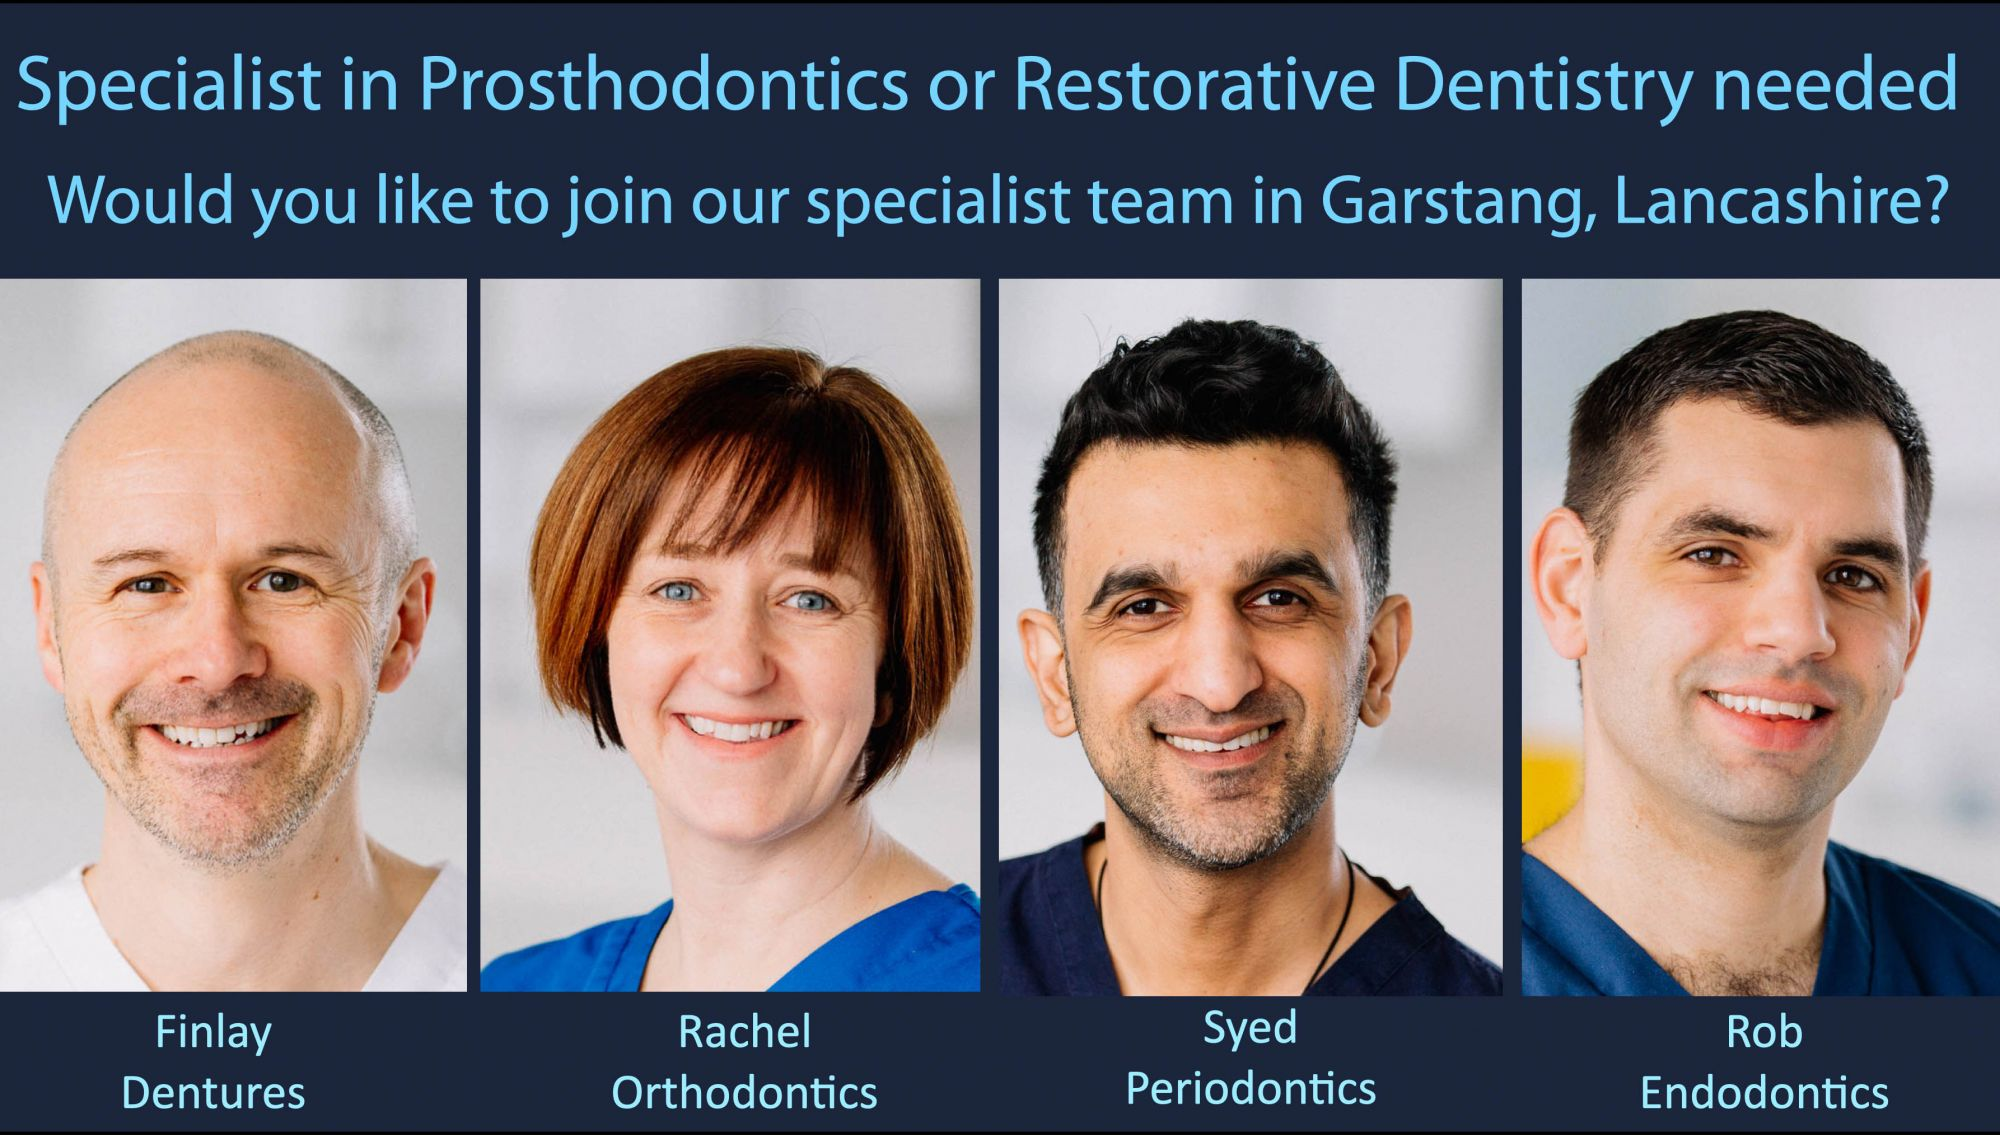 We need a Specialist in Prosthodontics or Restorative Dentistry